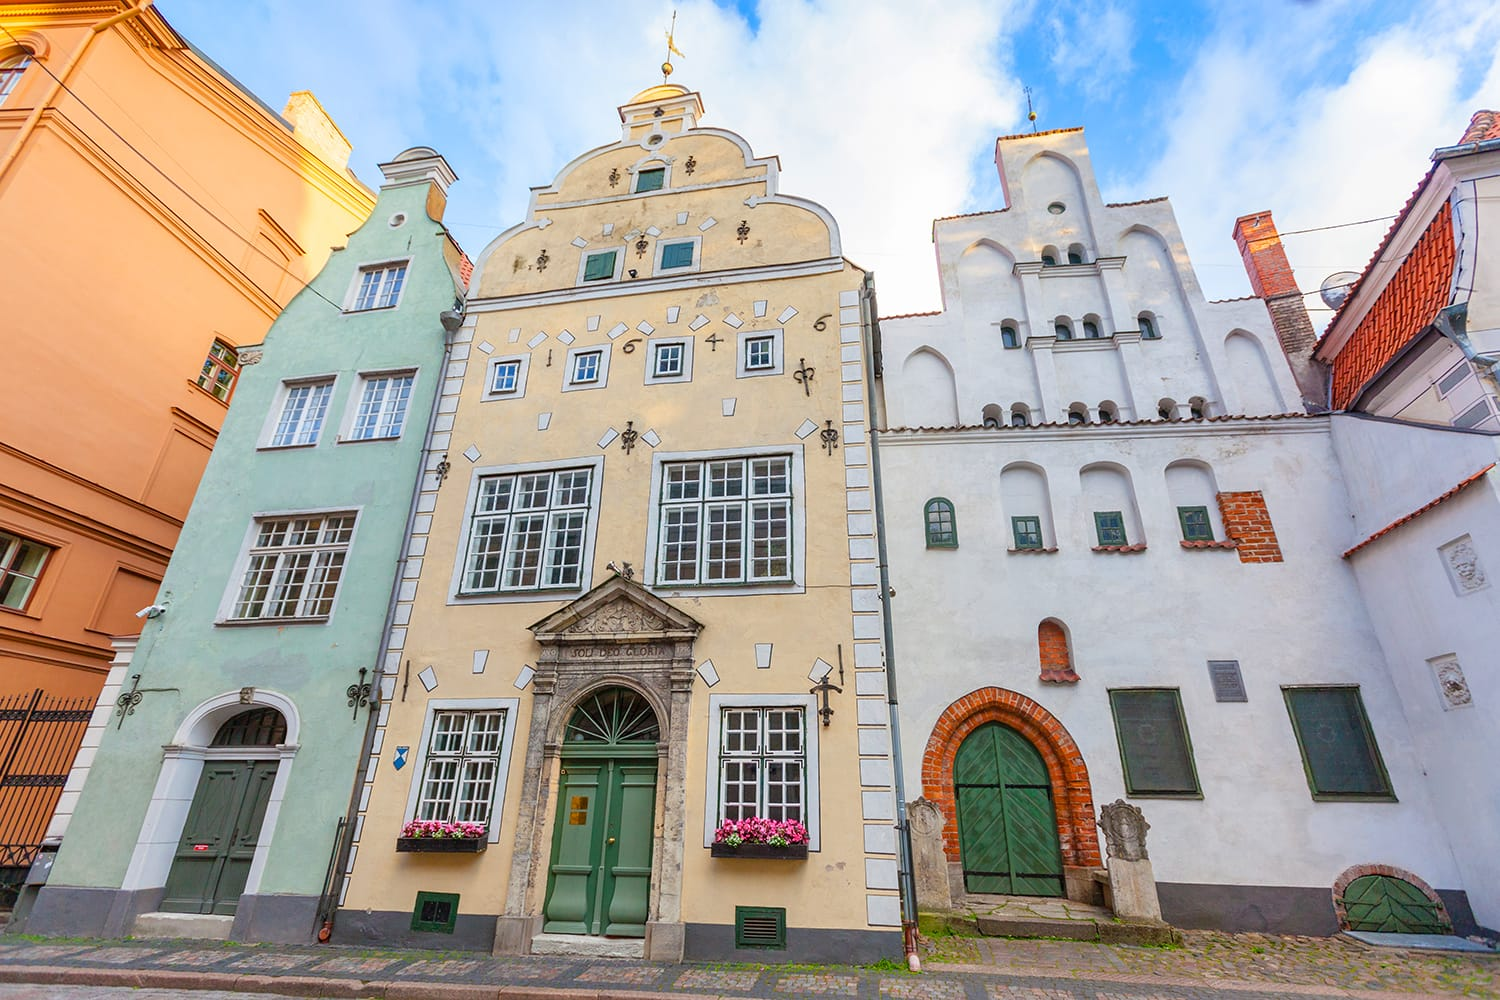 Three Brothers Houses in Riga, Latvia